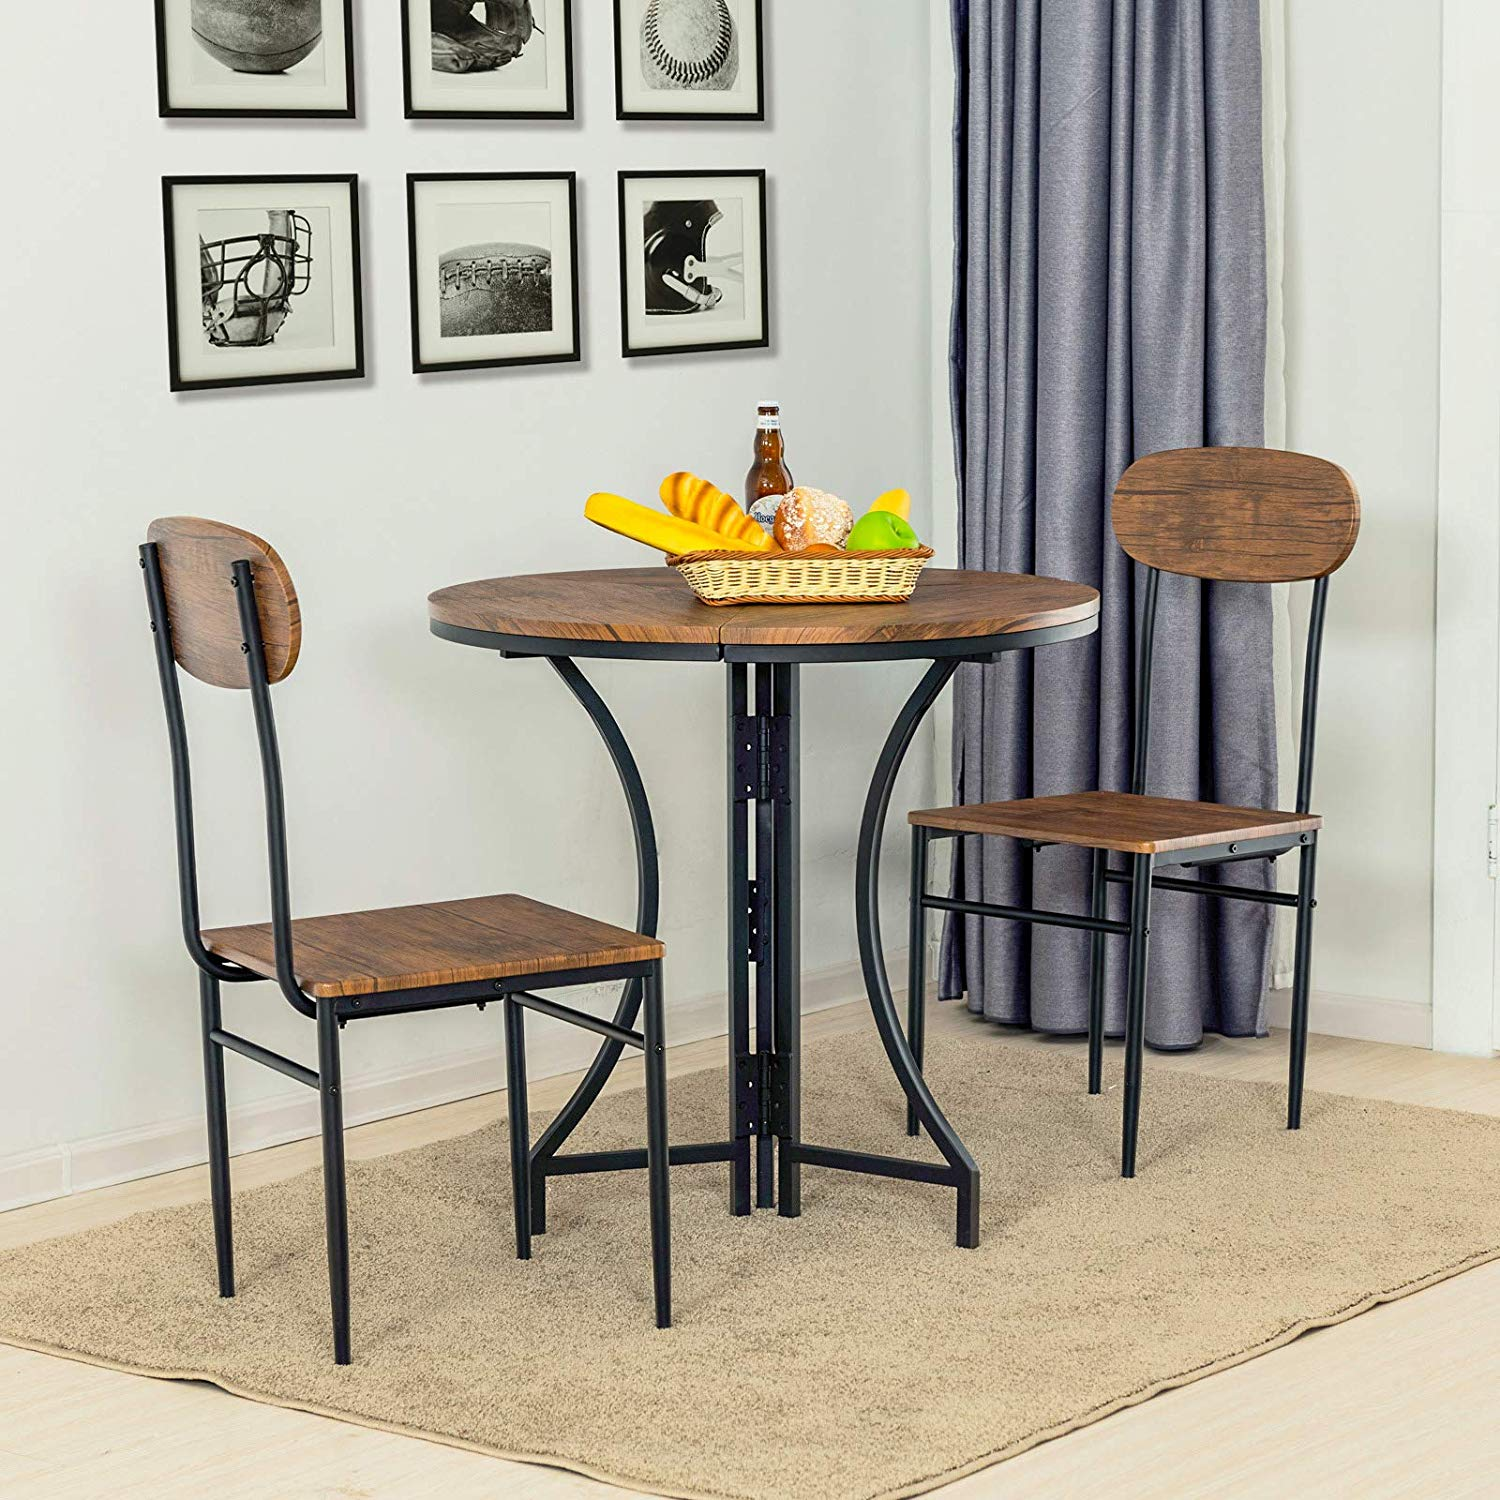 Mecor 3 Pcs Foldable Dining Table And Chairs Set Mid Century Vintage Round Foldable Coffee Table And Chairs With Metal Frame For Kitchen Patio Dining Room Walmart Com Walmart Com